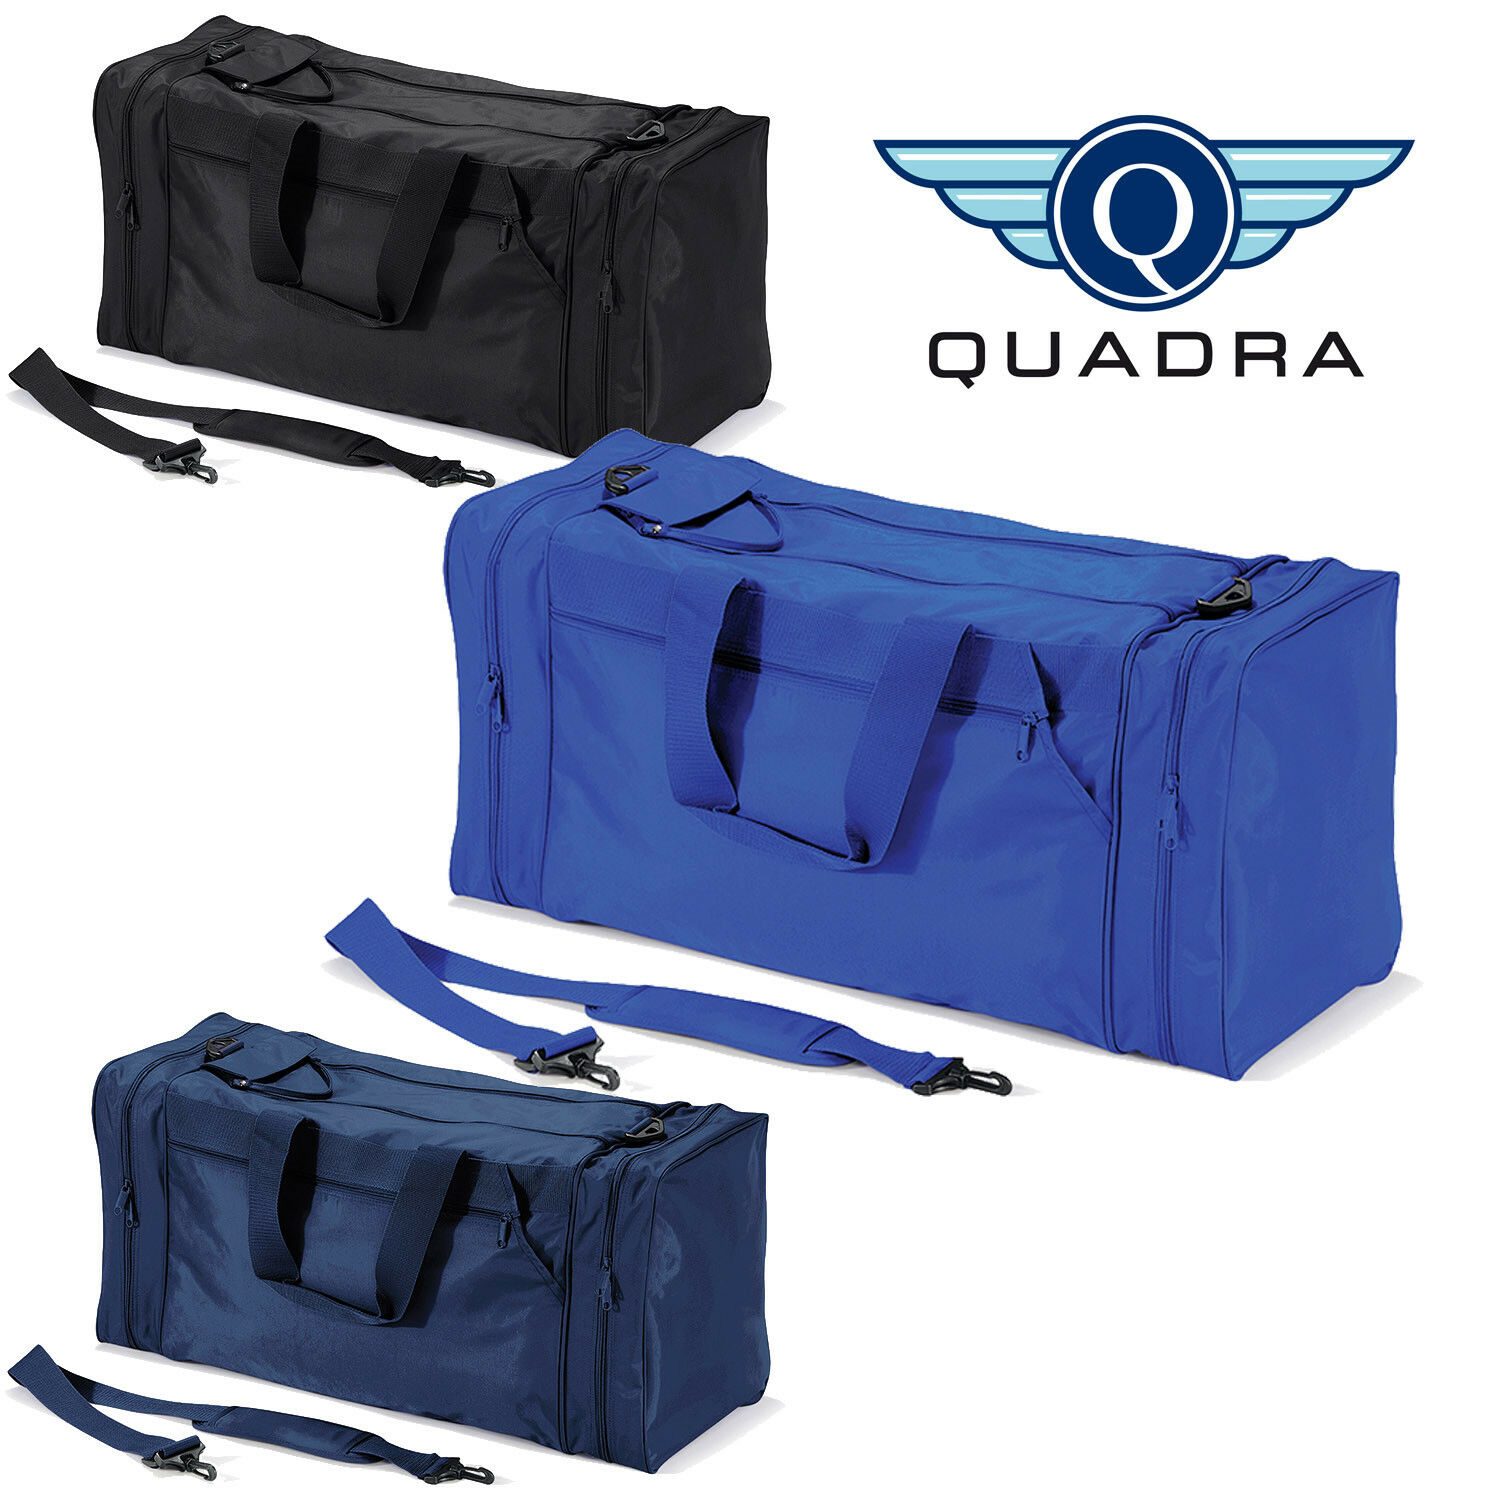 Quadra Extra Large 74 Litre Gym Sports Team Training Durable Adjustable Kit Bag